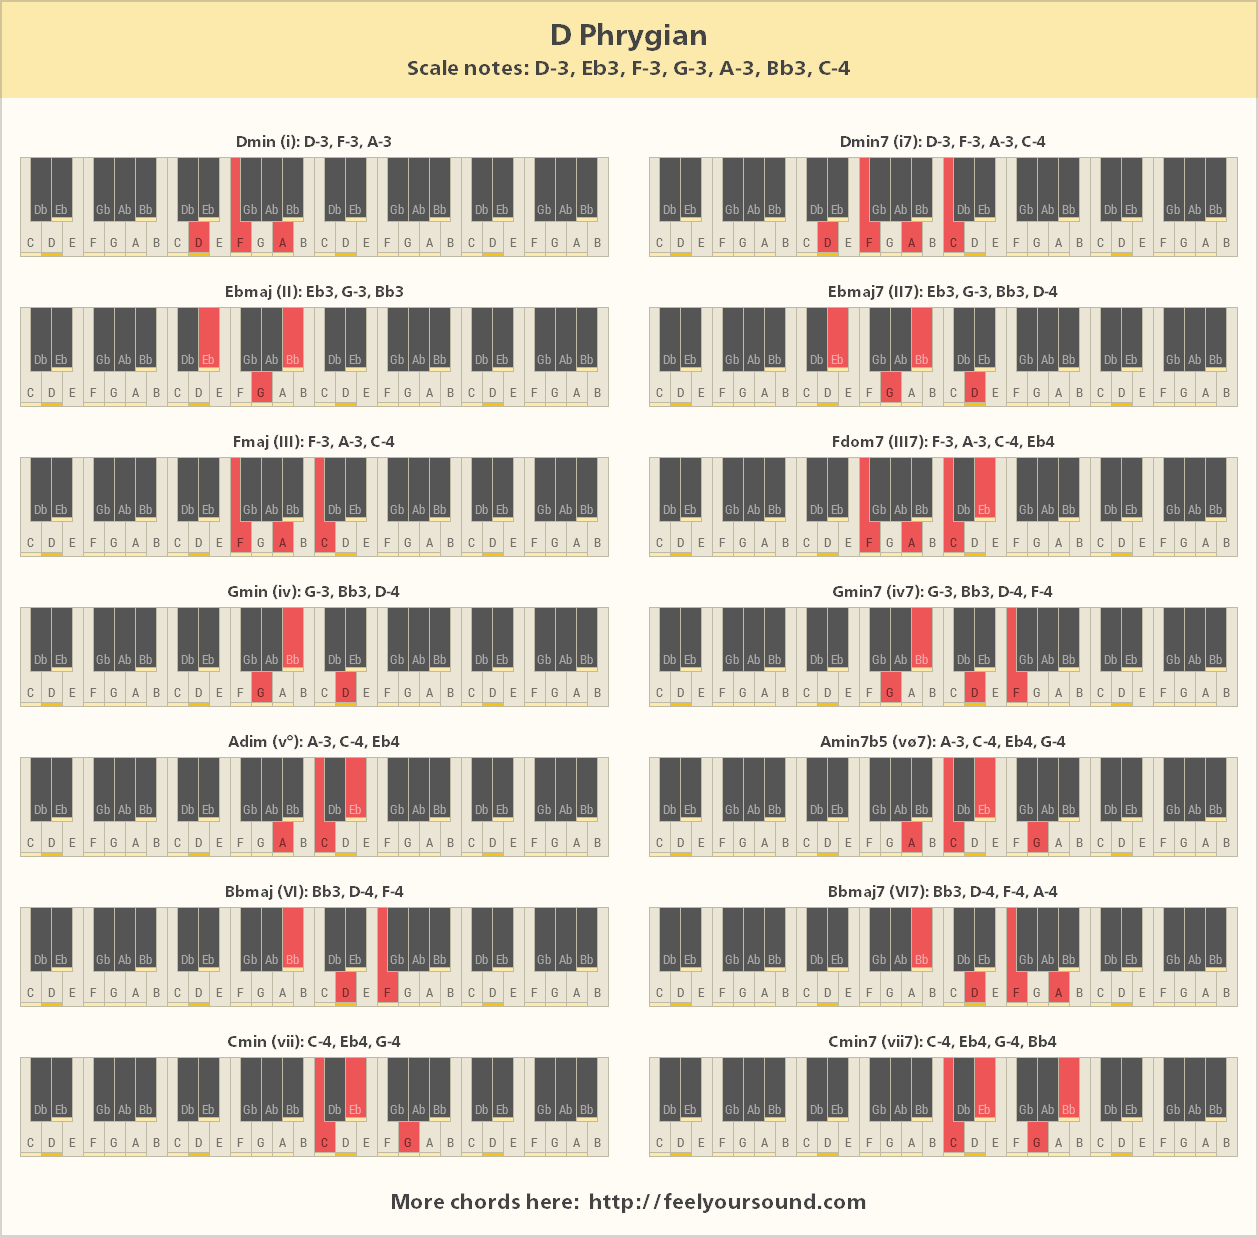 Chords and scale notes of D Phrygian